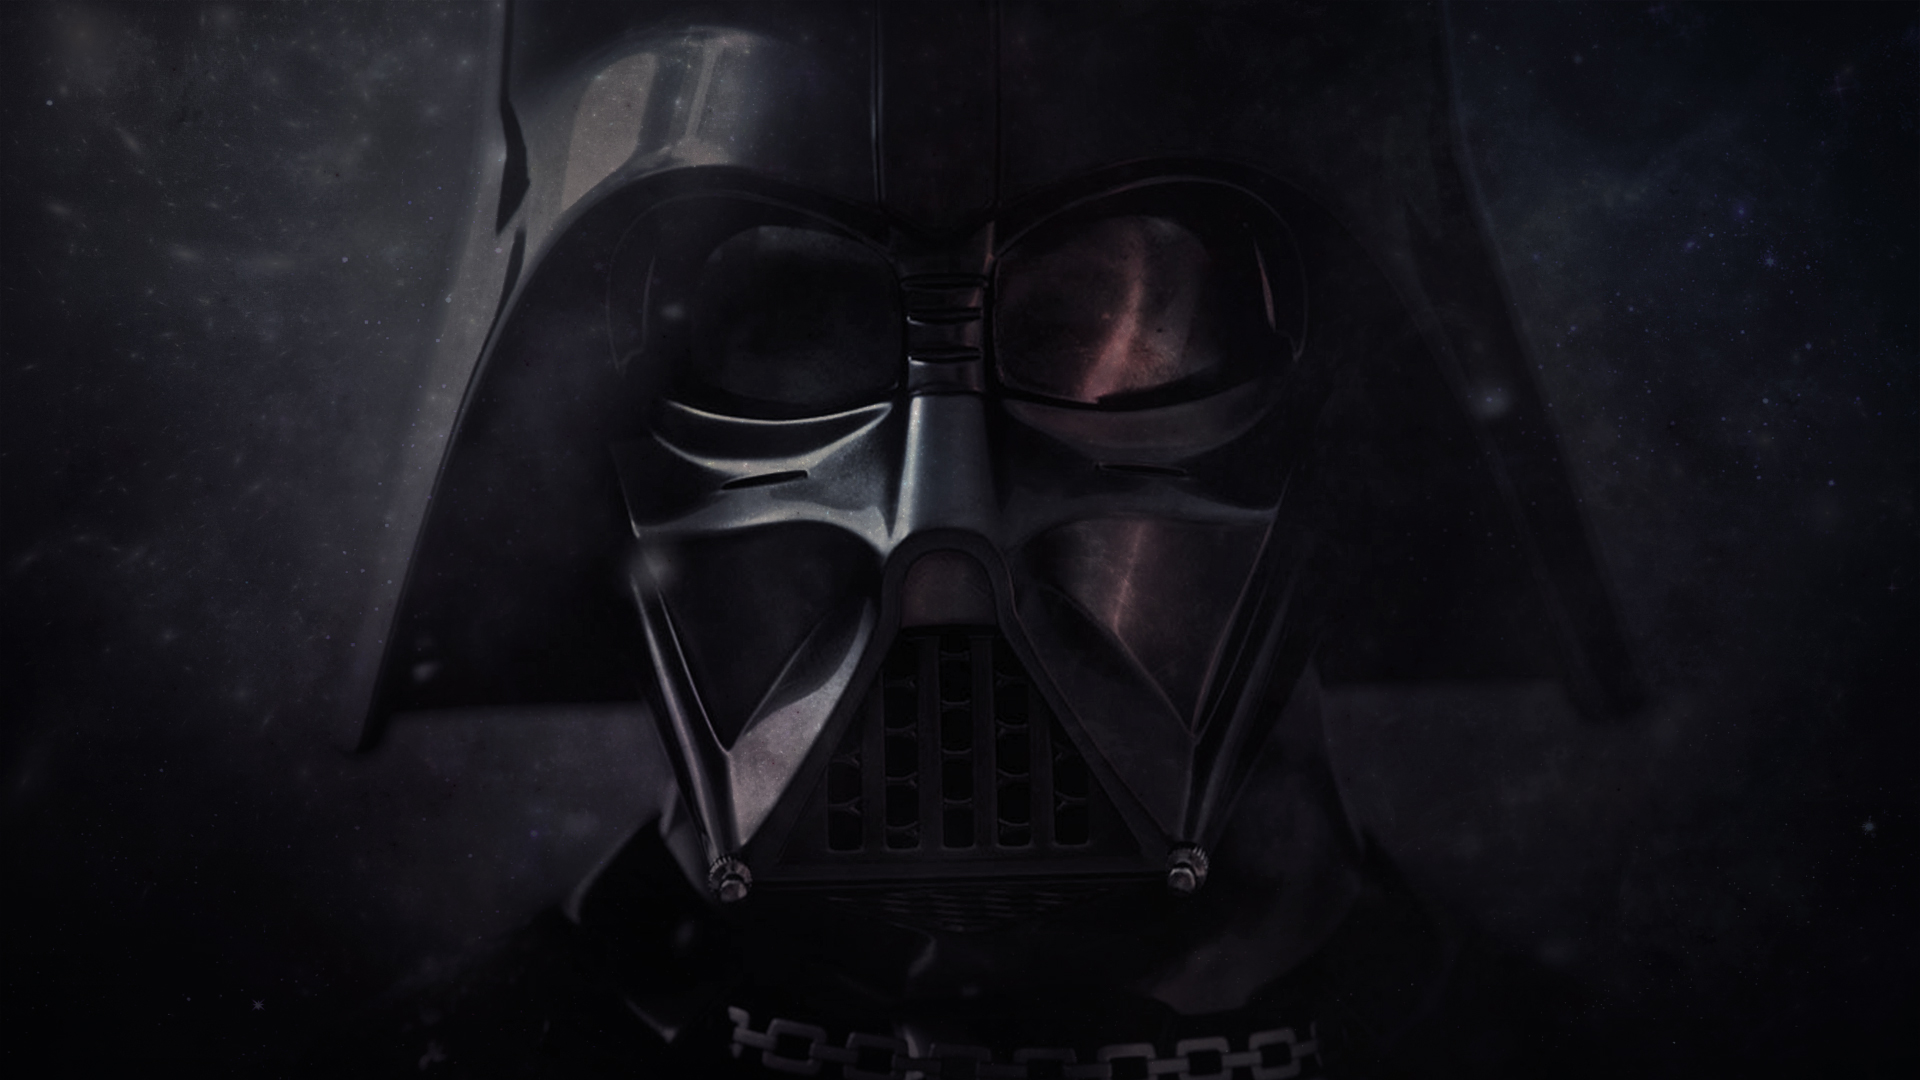 Darth vader wallpaper 1080p